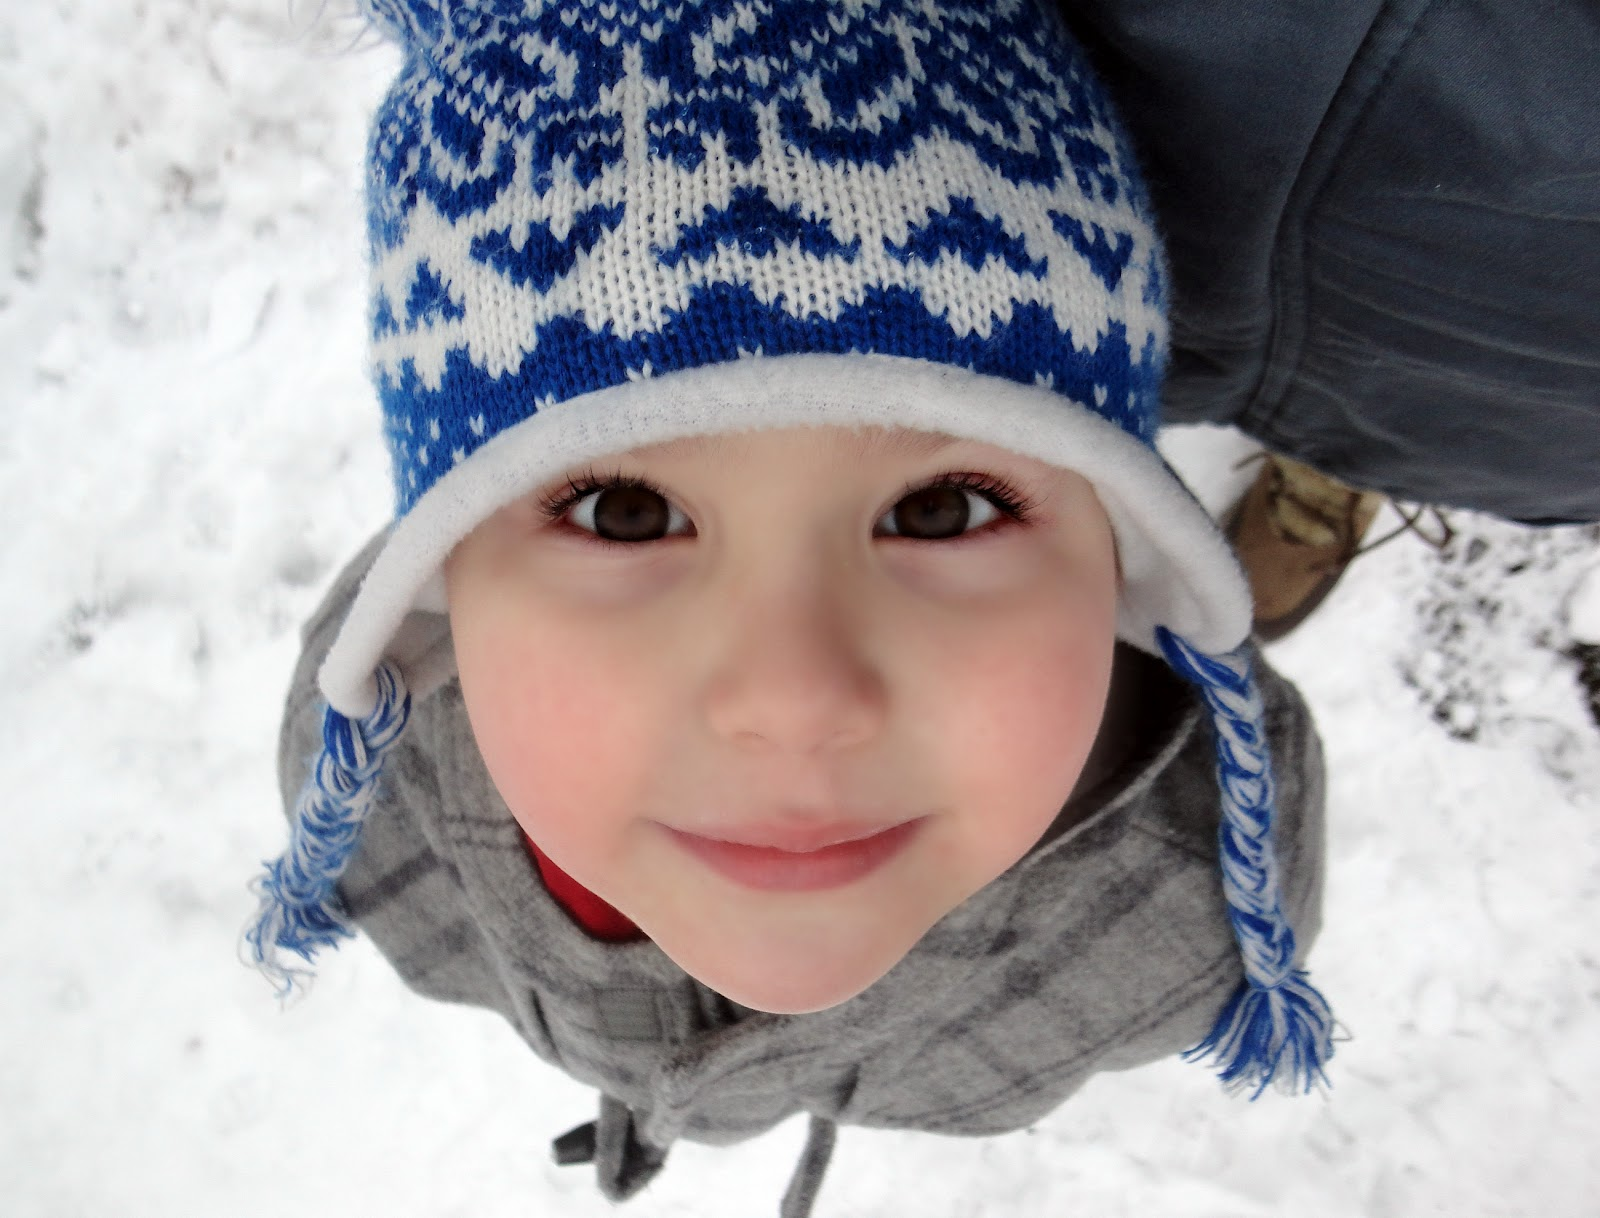 Dan Jon Jr in the snow with his hat